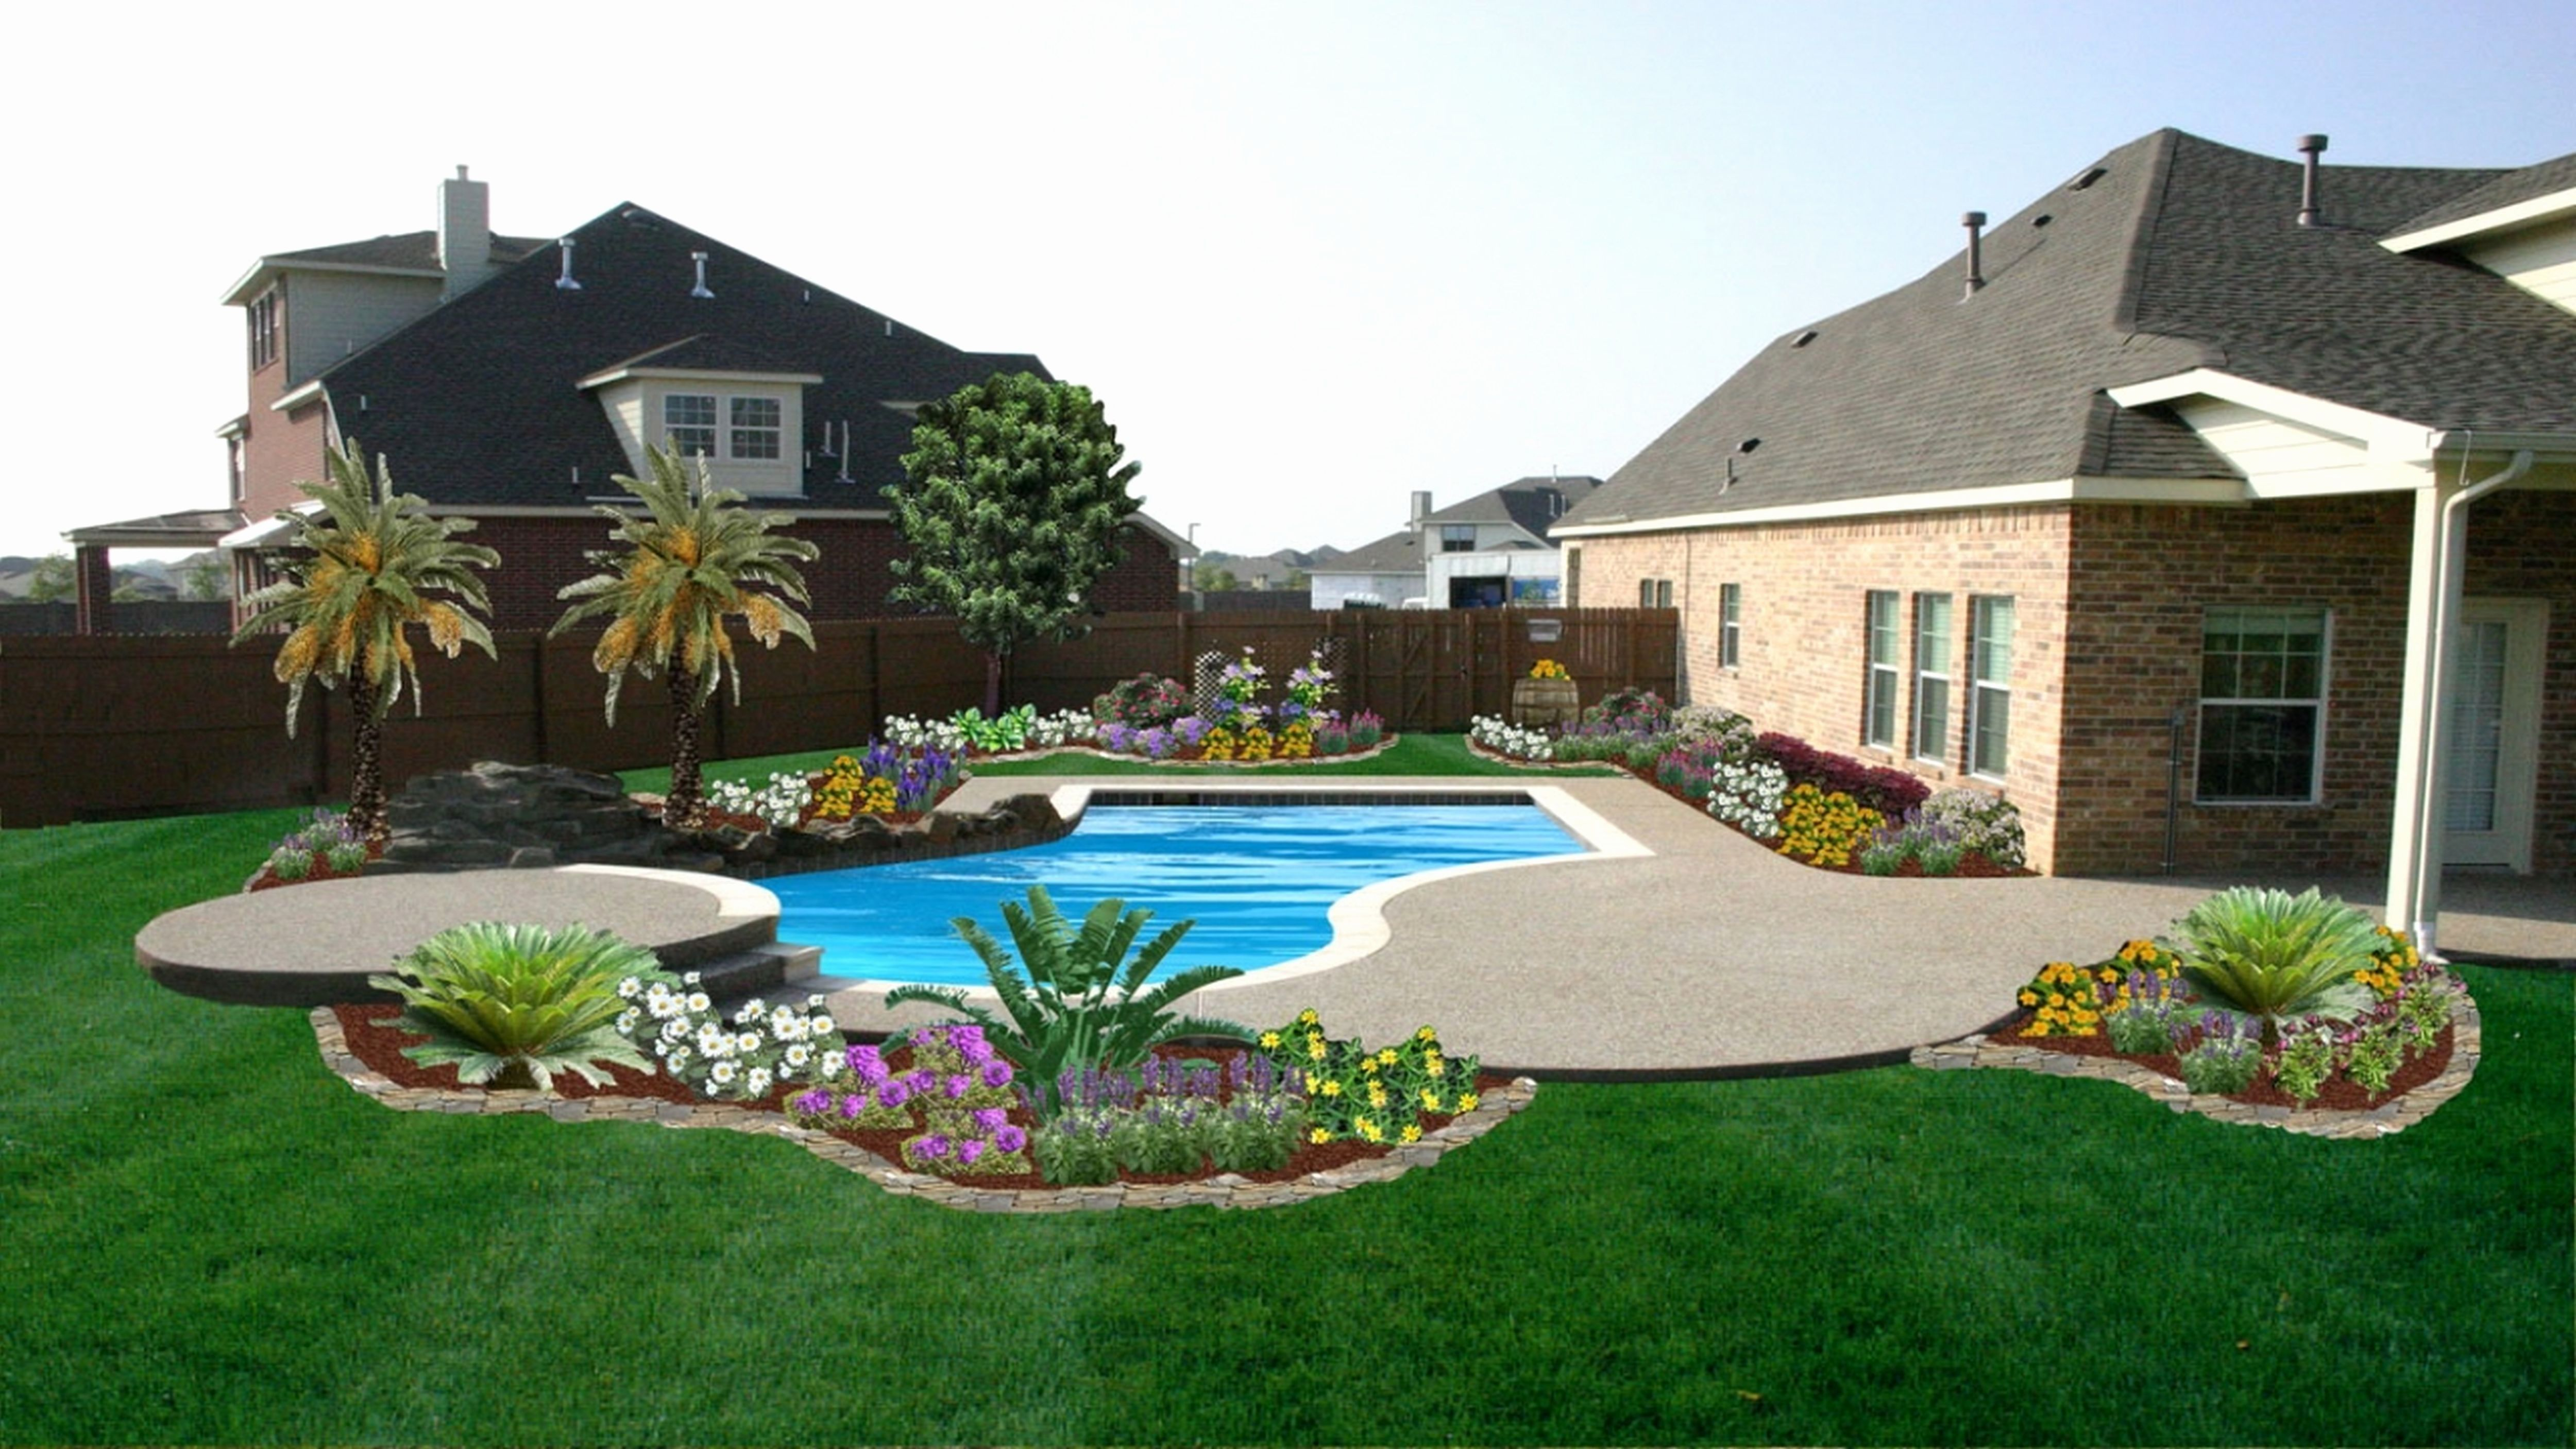 Landscape Ideas Around Pool Beautiful Backyard Landscaping Ideas Around Pool Simple Plus Decora Backyard Pool Landscaping Pool Landscape Design Sloped Backyard